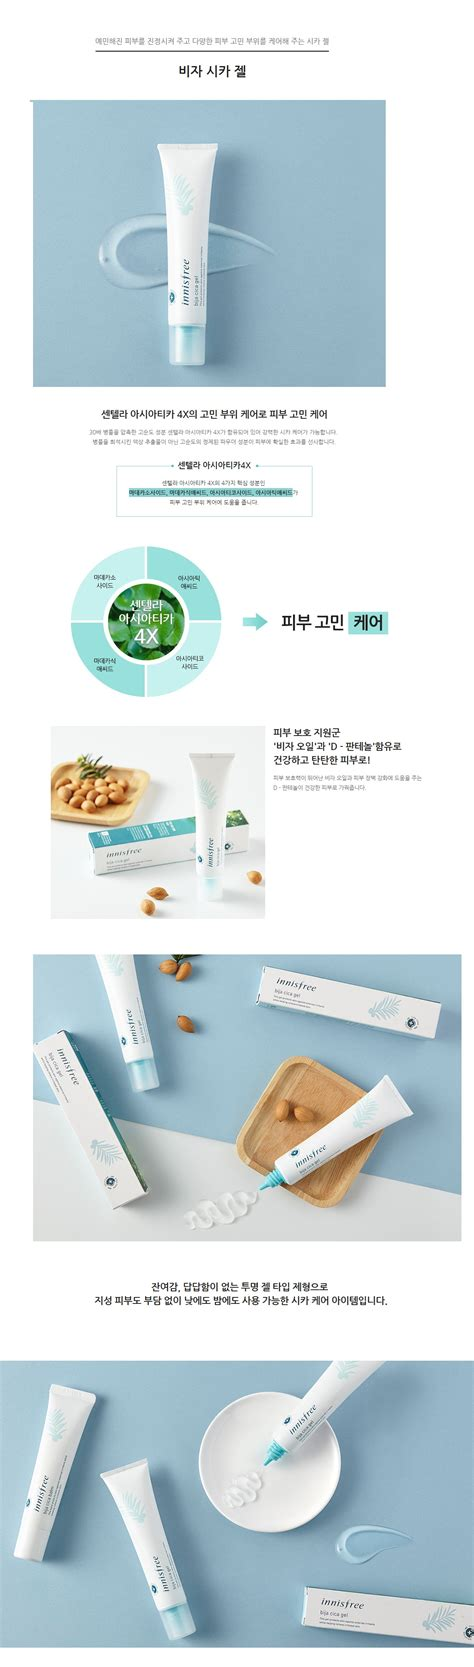 Innisfree Bija Cica Gel 40ml innisfree bija cica gel seoul next by you malaysia